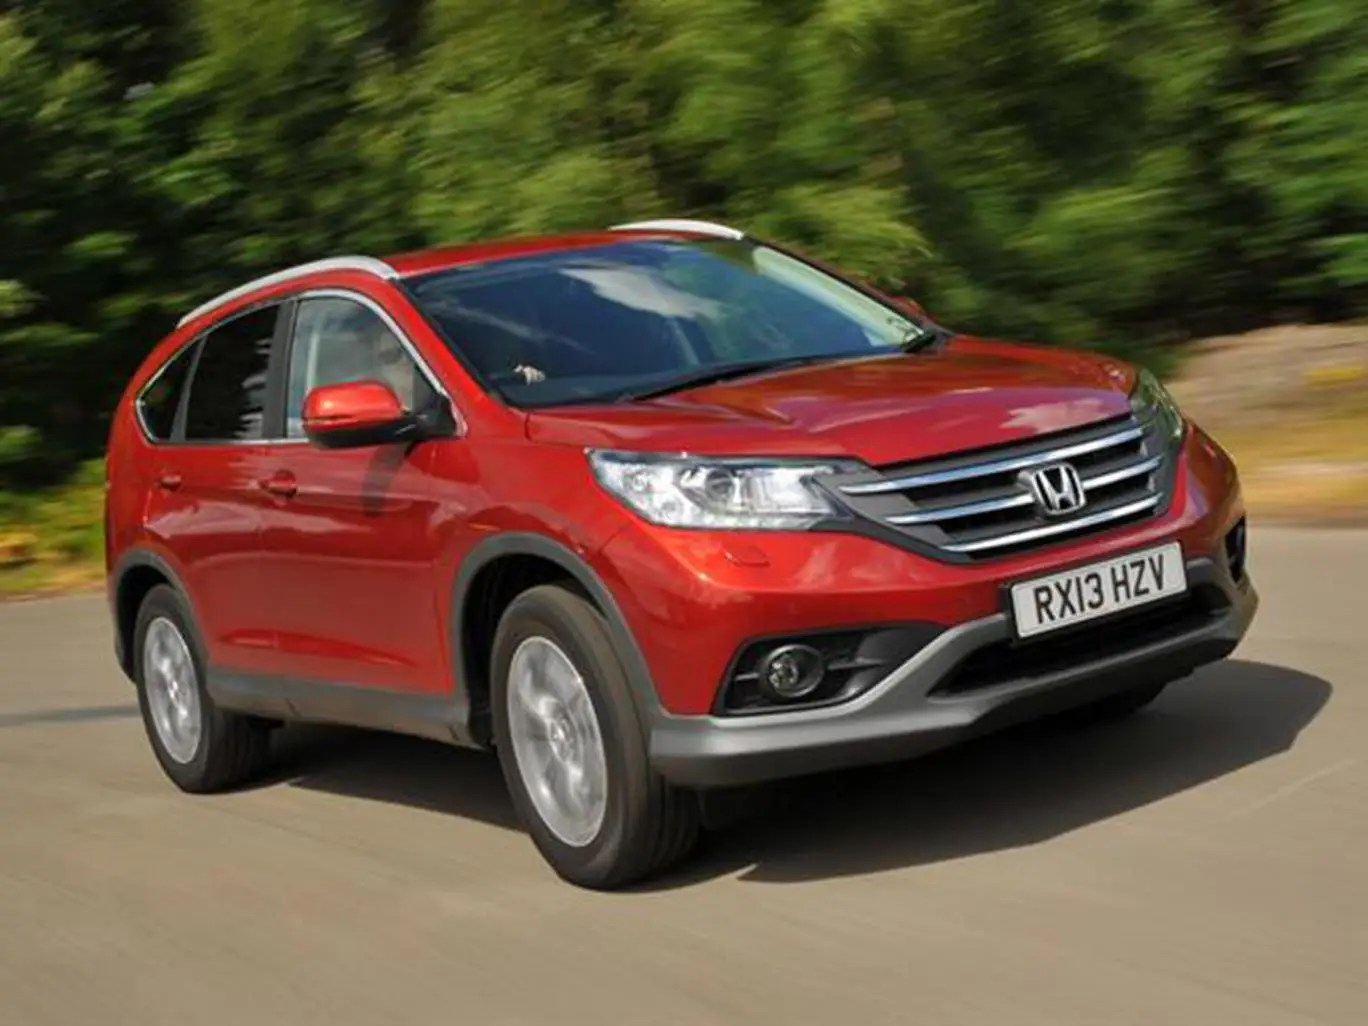 The top 10 most economical SUVs | Features | Lifestyle | The Independent